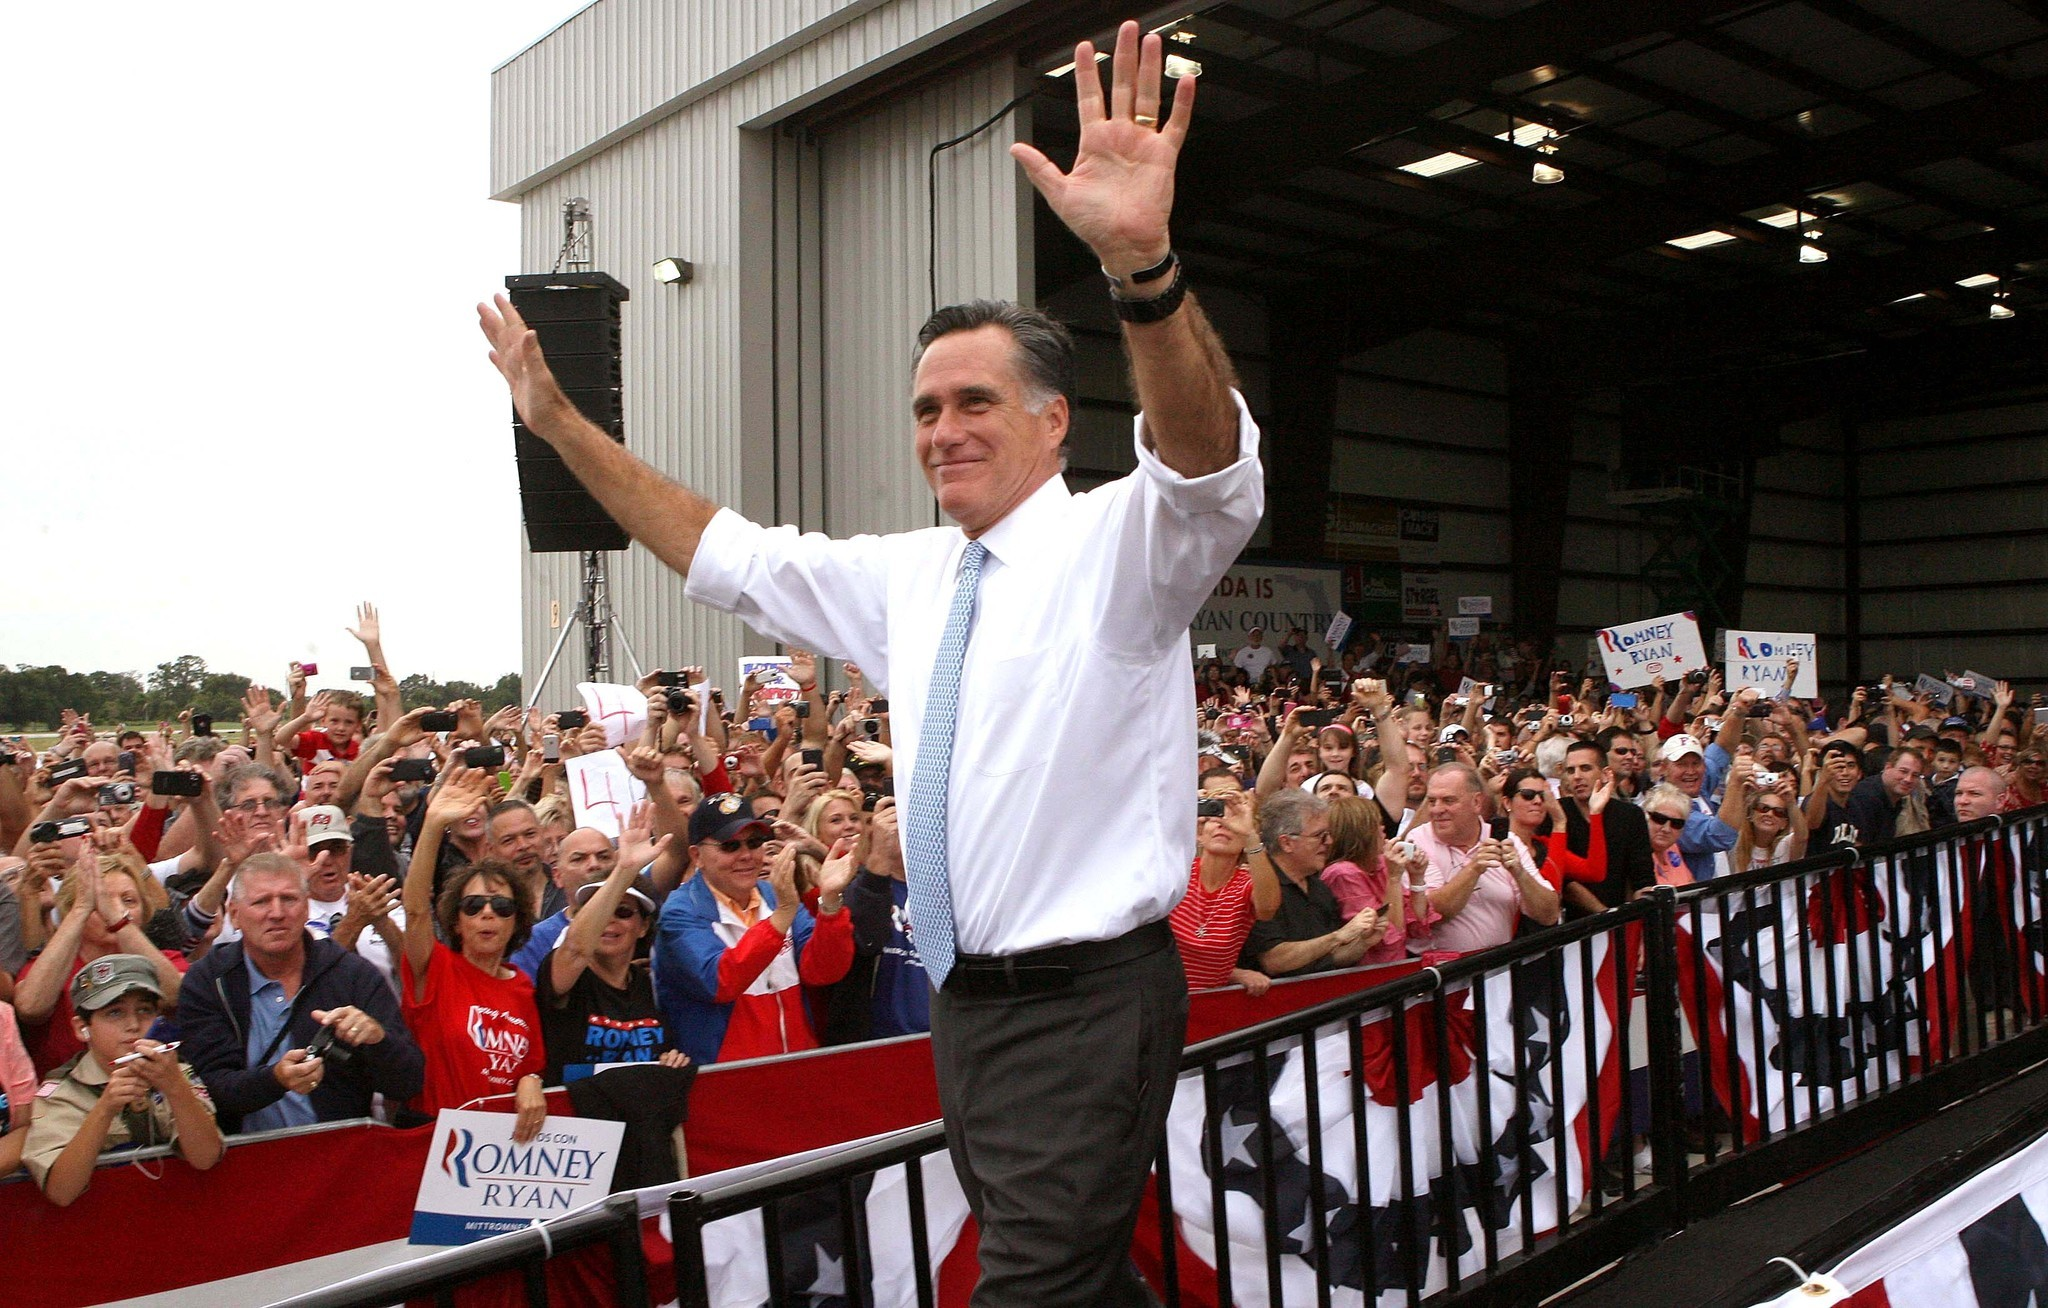 Mitt Romney rallies supporters at the Kissimmee airport, in Kissimmee, Fla. Saturday, October 27, 2012.